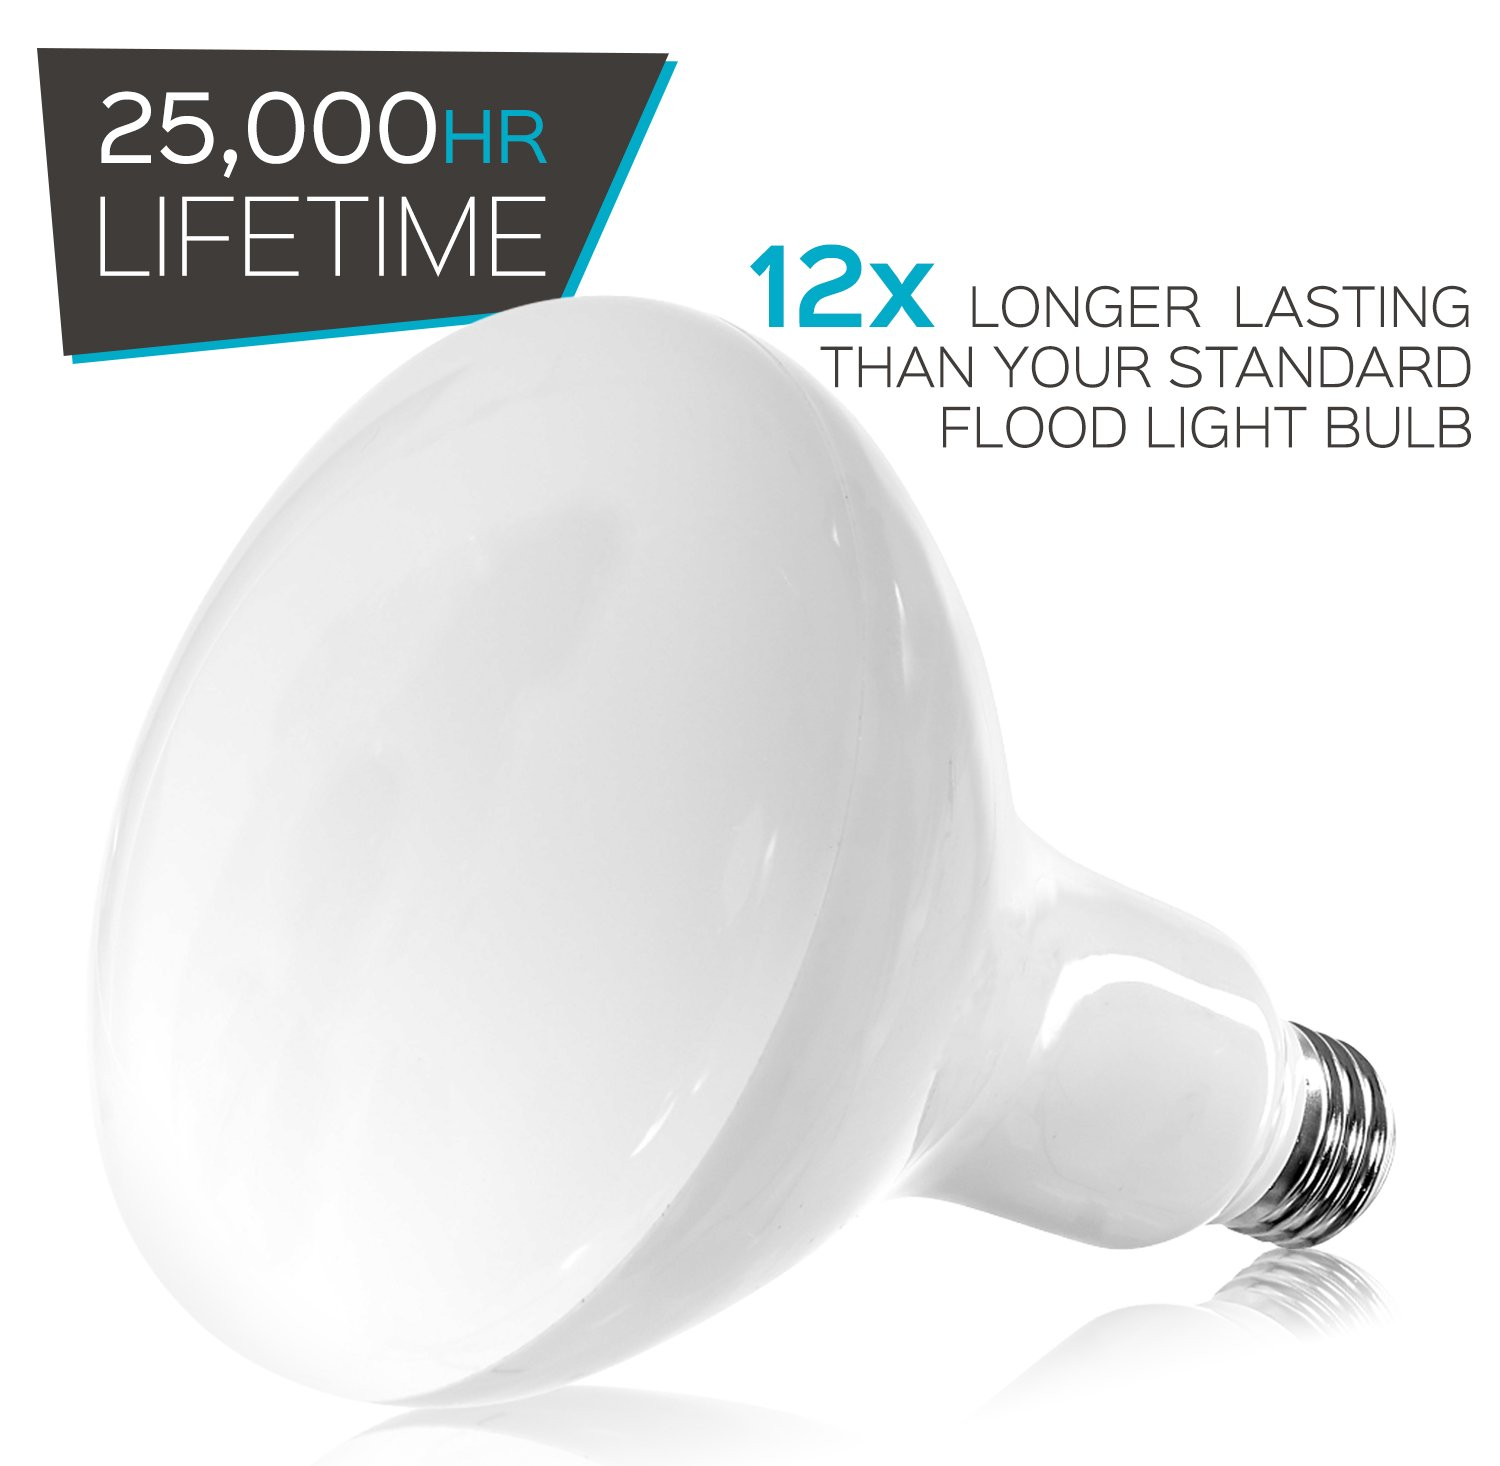 Luxrite BR40 LED Light Bulbs, 85W Equivalent, 3500K Natural White, Dimmable, 1100 Lumen, LED Flood Light Bulb, 14W, E26 Medium Base, Indoor/Outdoor - Perfect for Office and Recessed Lighting (12 Pack) by Luxrite (Image #6)